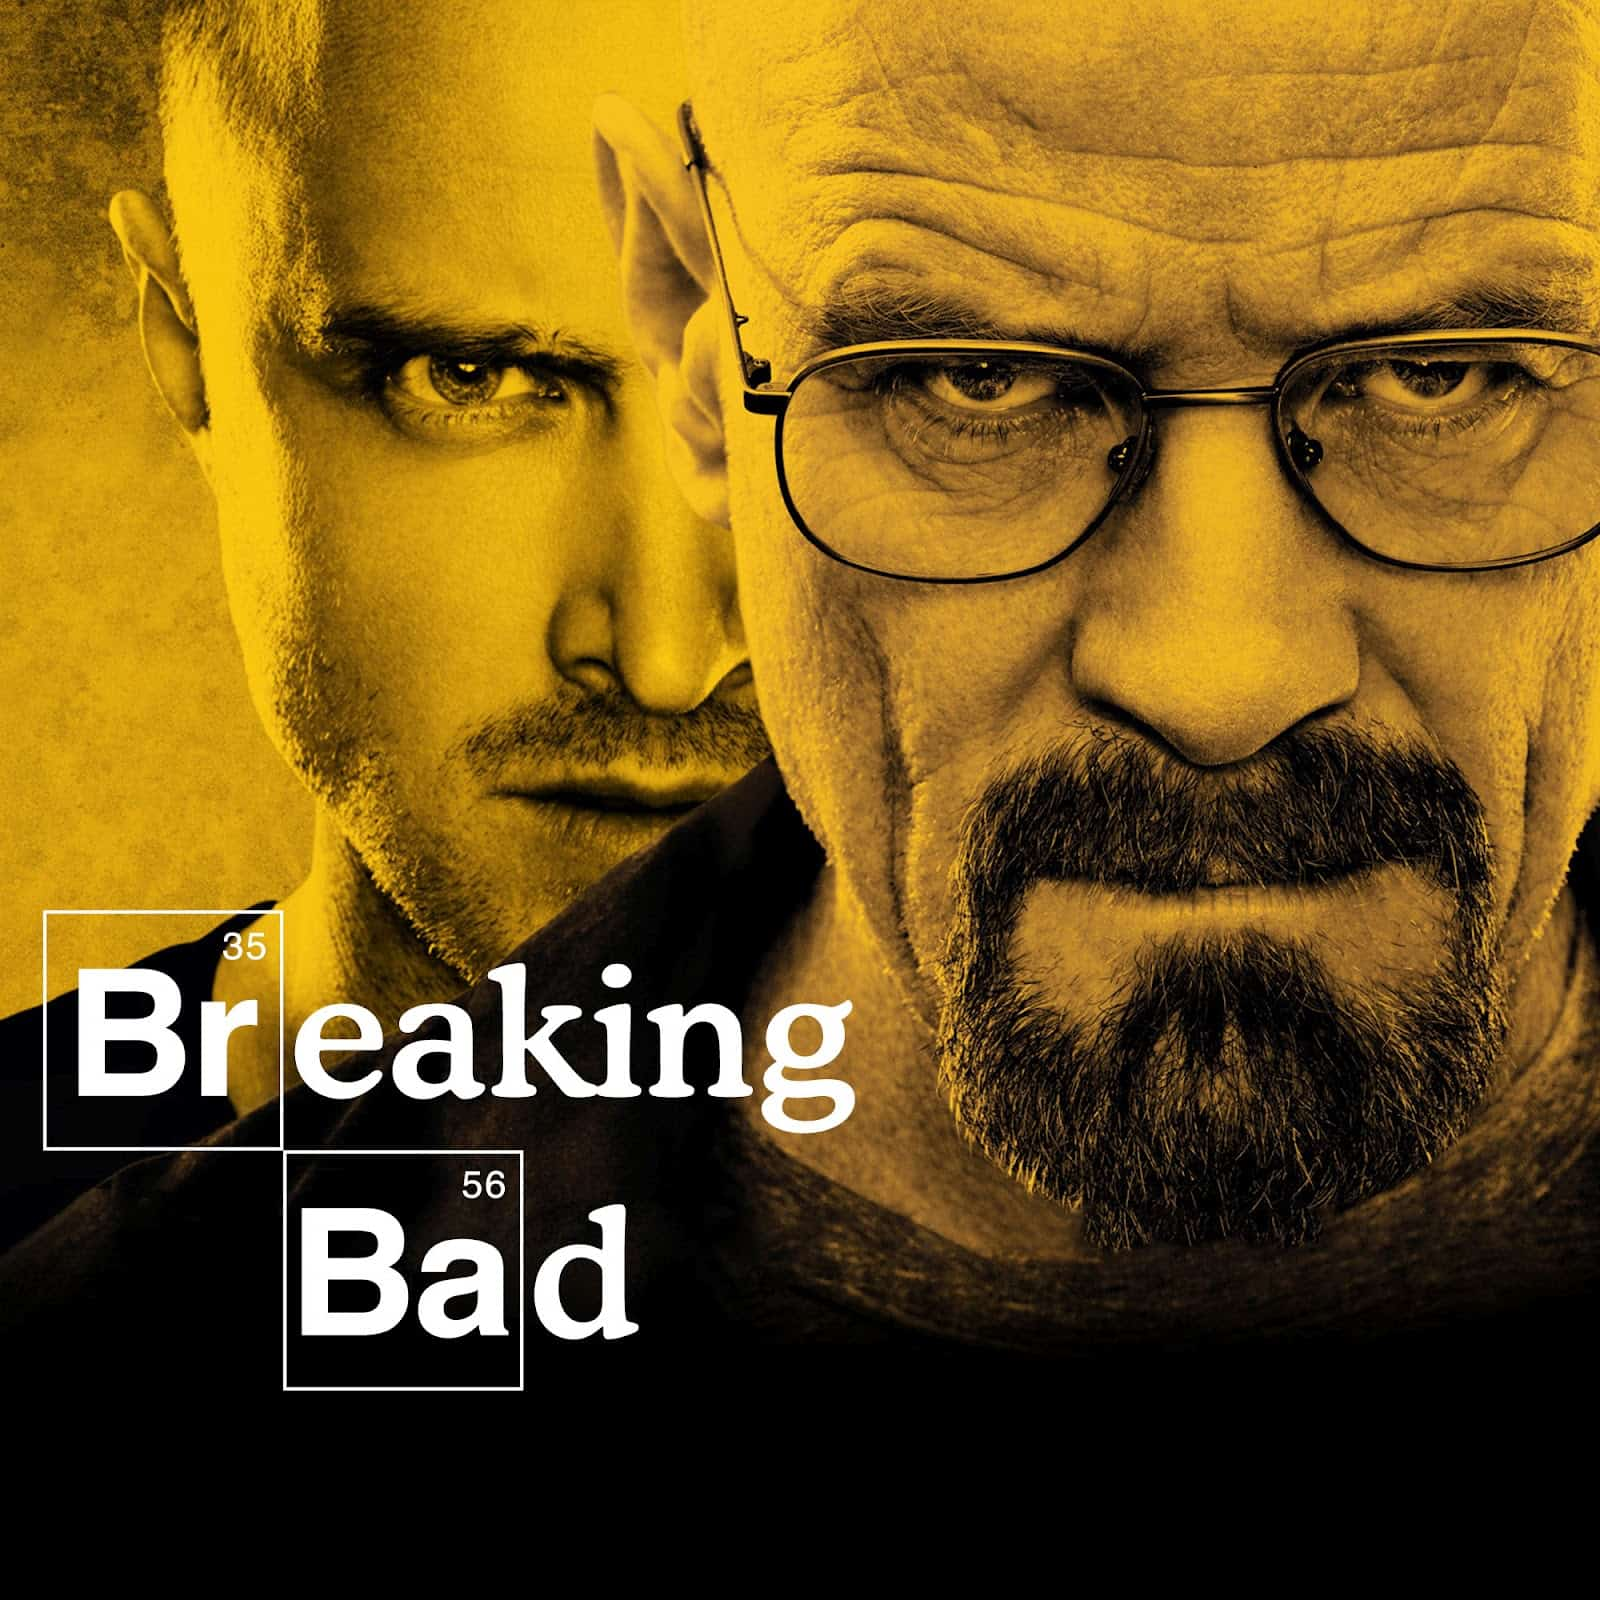 Learn English through Breaking Bad